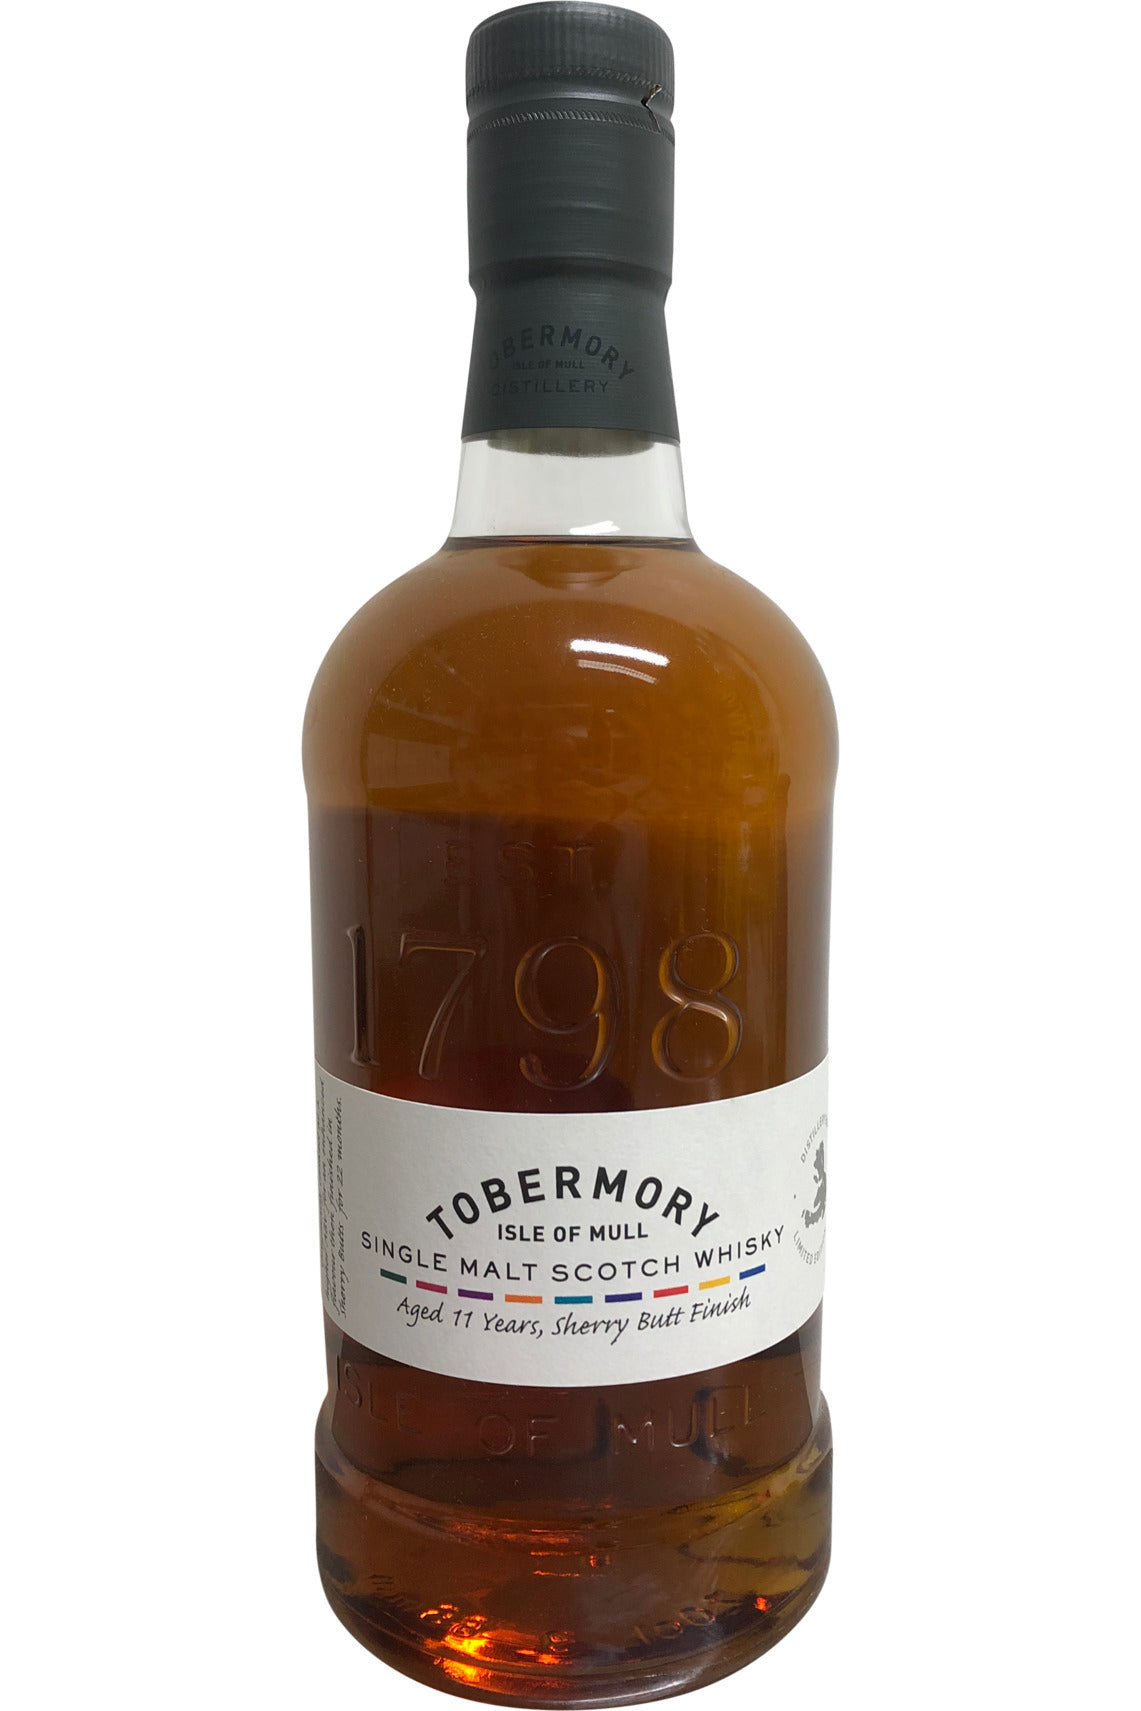 Tobermory 11 Year Old Sherry Cask 62.4% 700ml